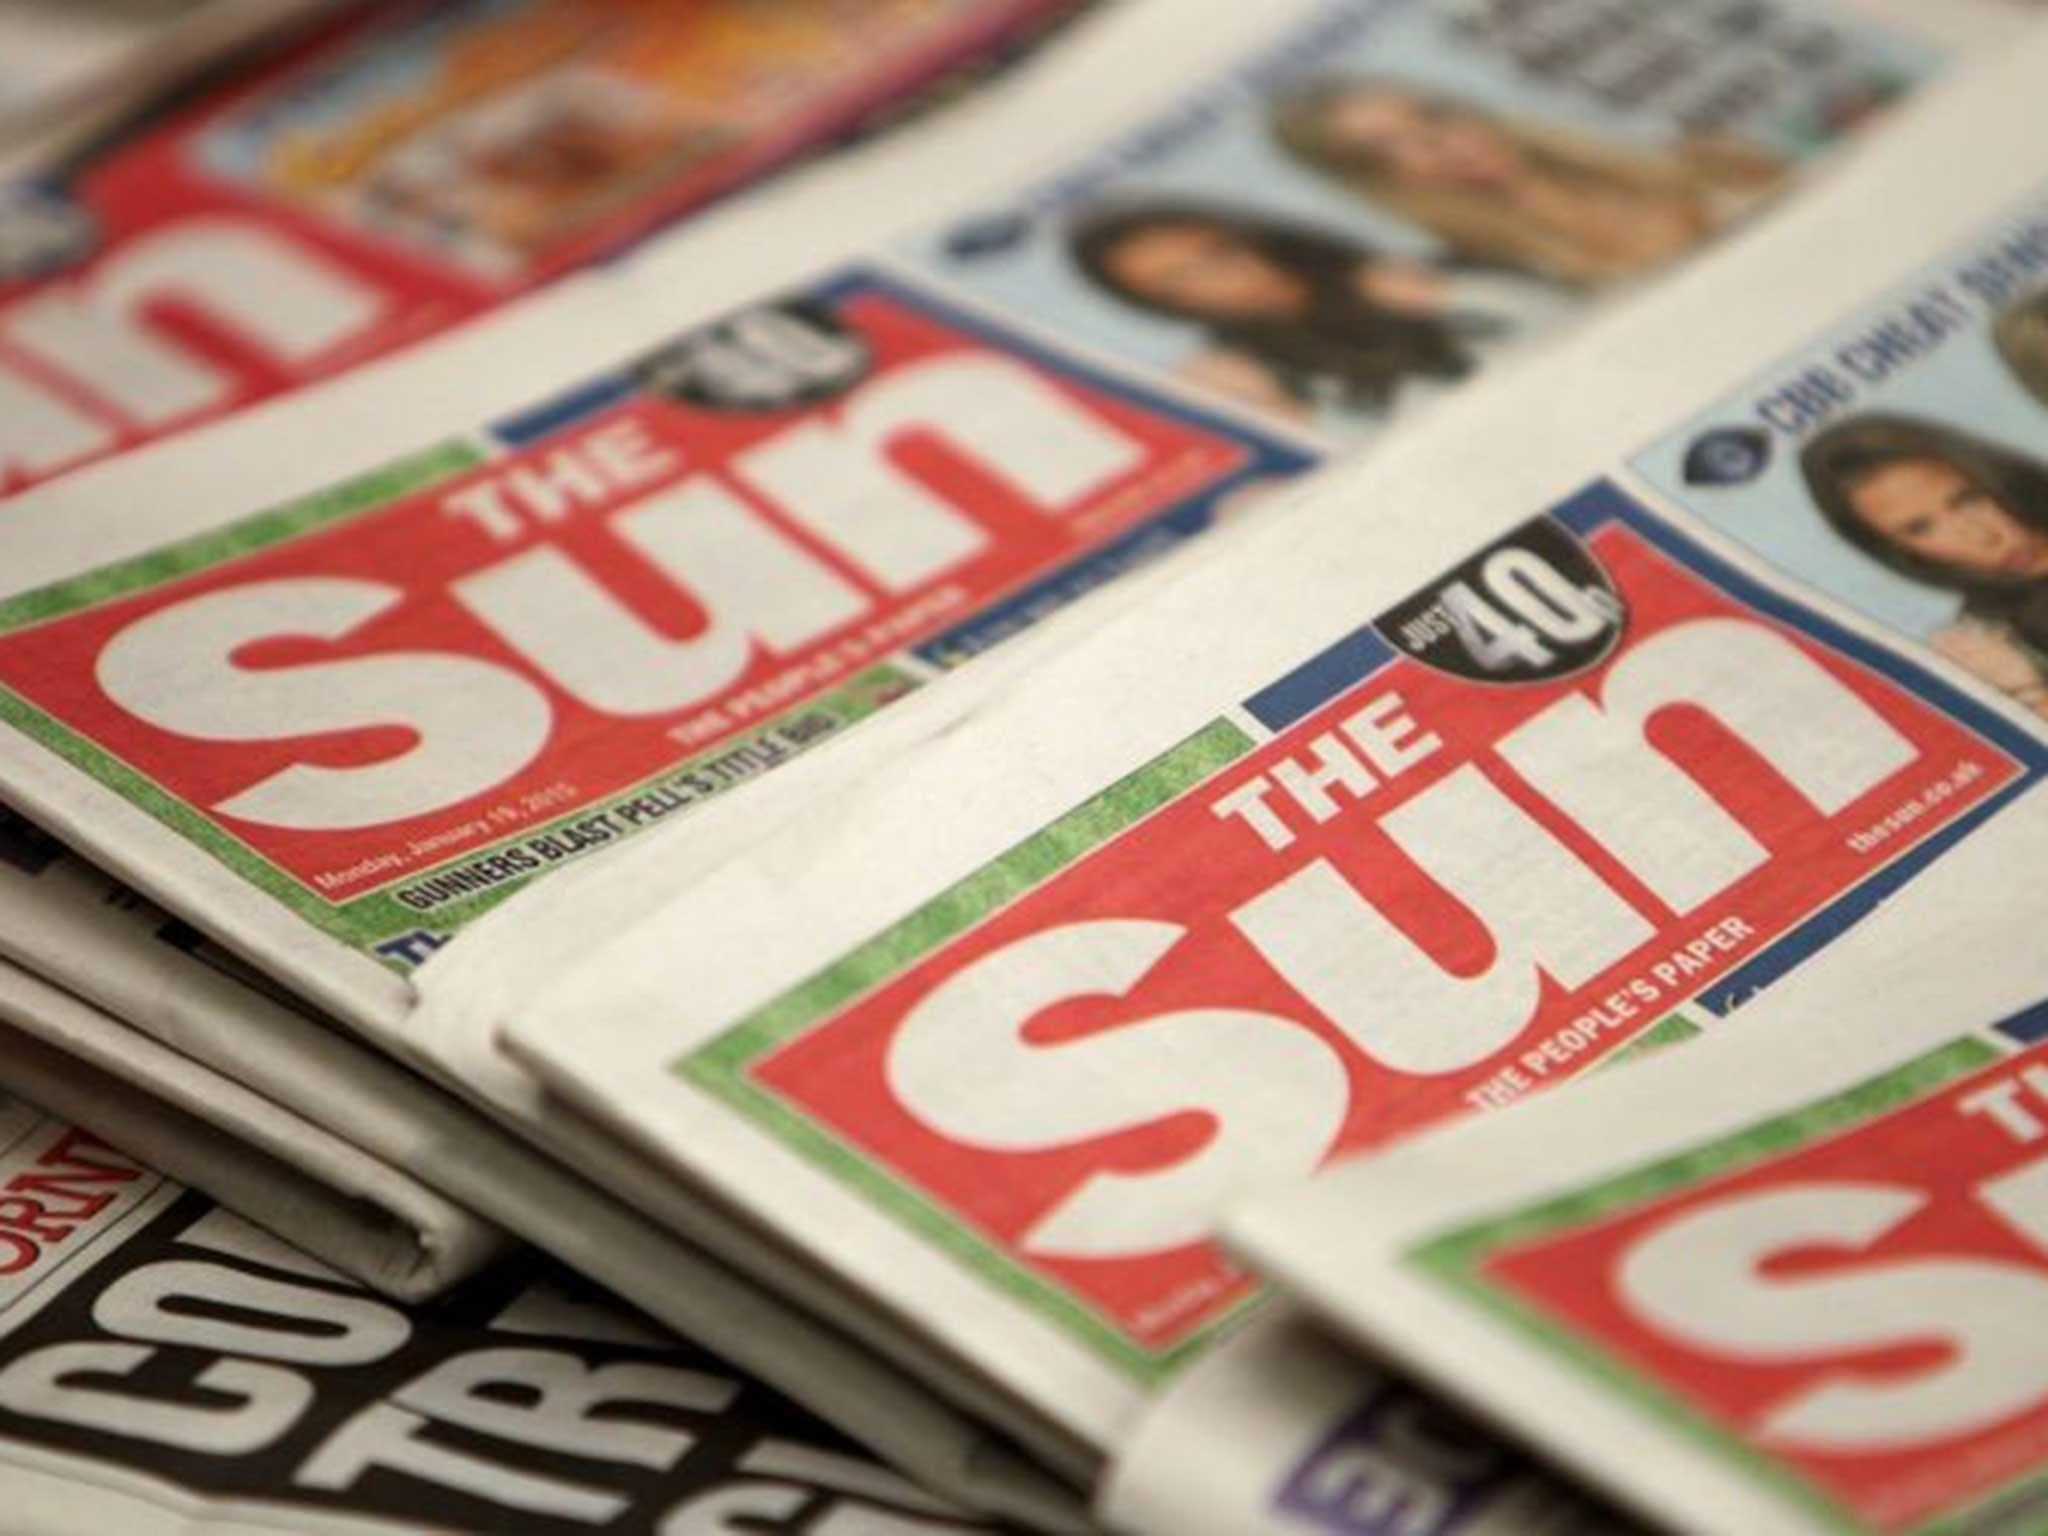 More than 100 cross-party politicians demand action over 'Muslim Problem' article in Sun newspaper